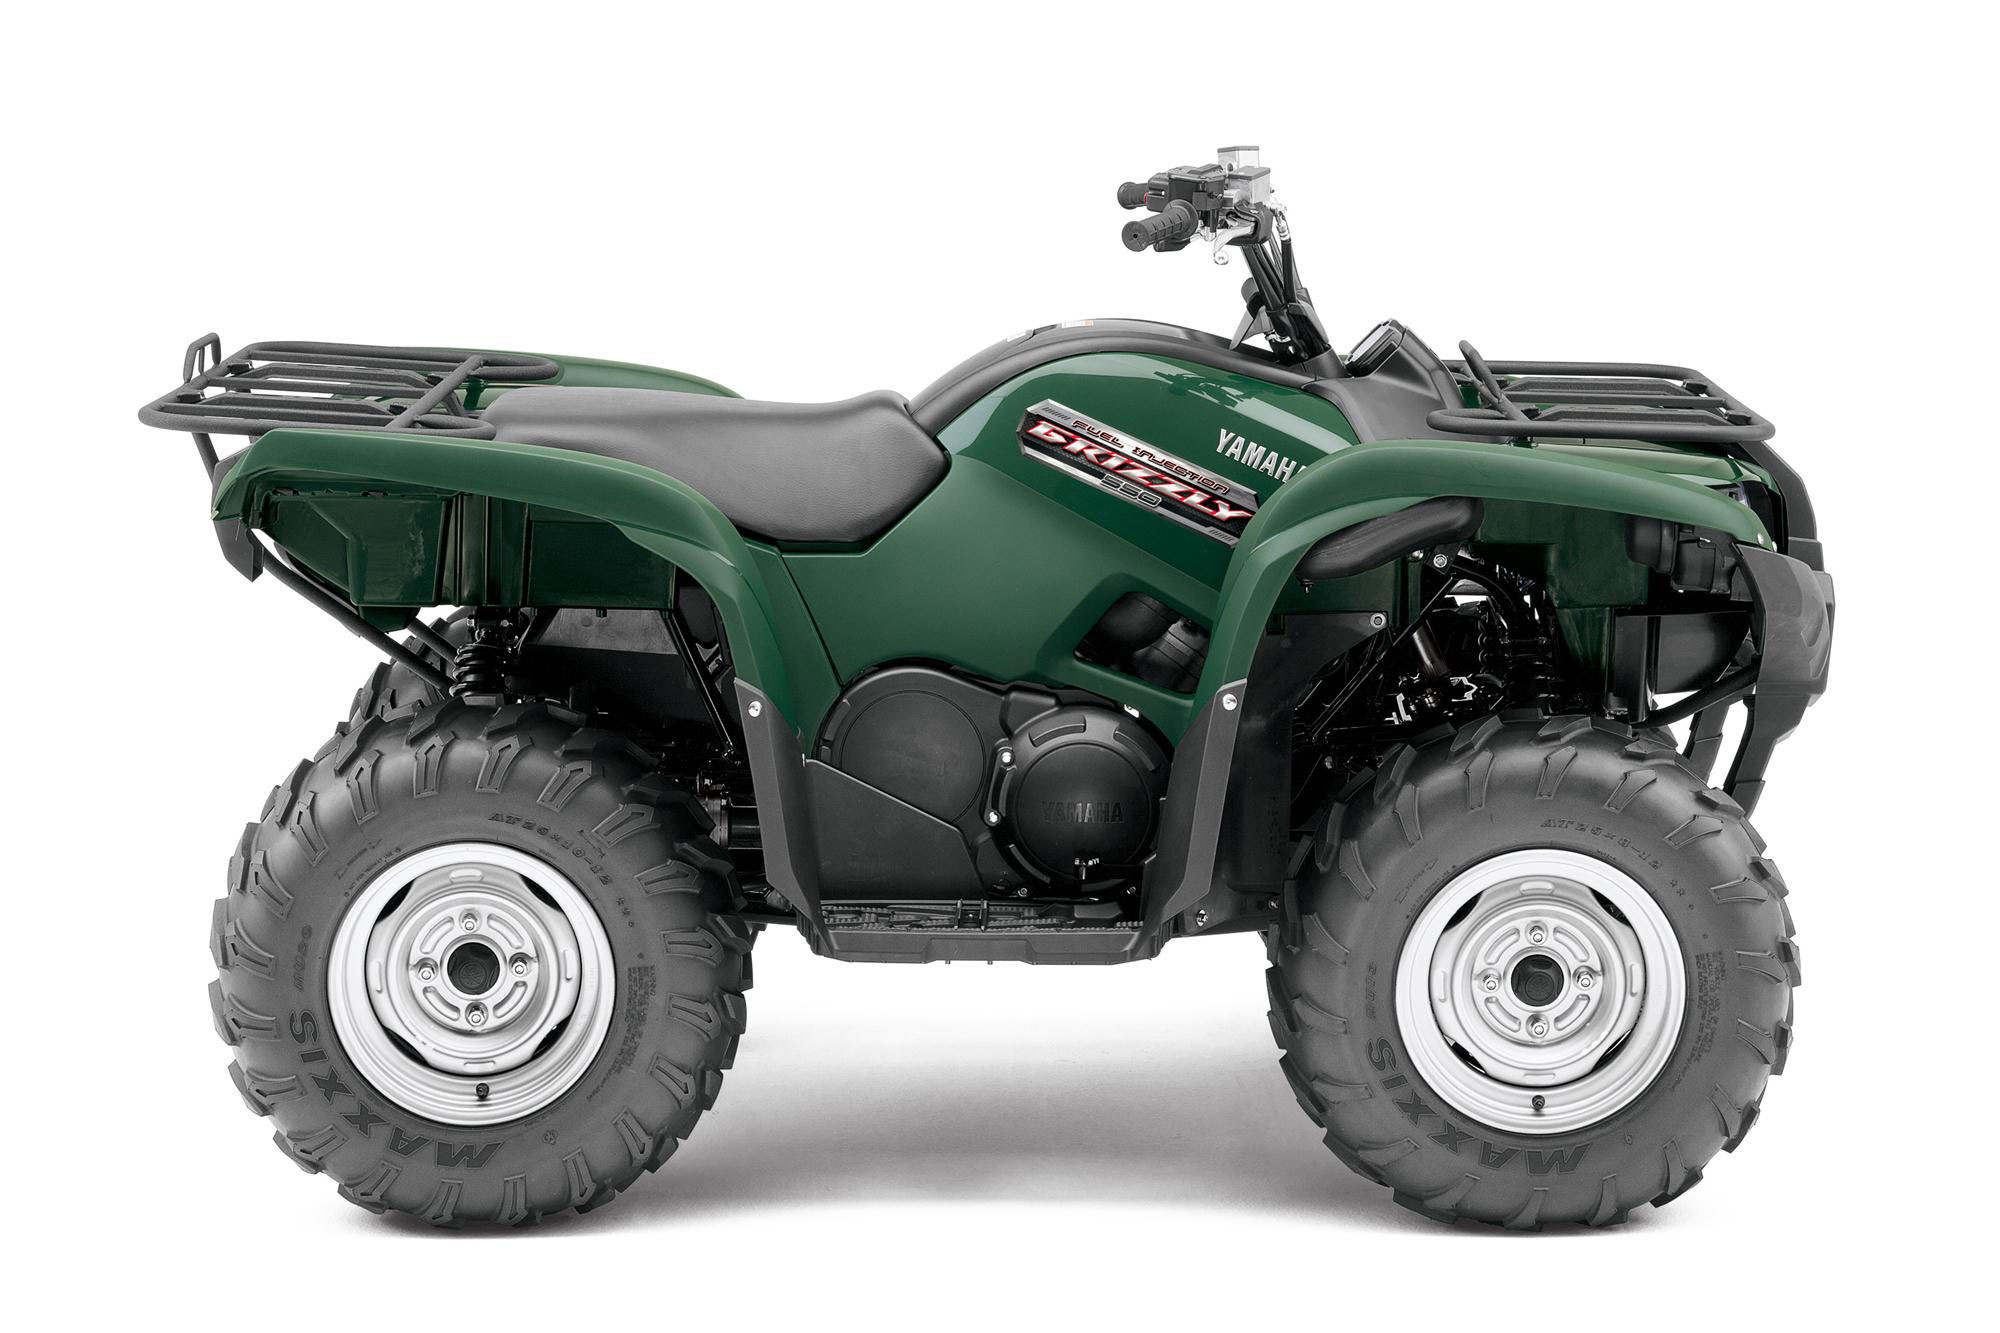 2013 yamaha grizzly 550 fi auto 4x4 review. Black Bedroom Furniture Sets. Home Design Ideas